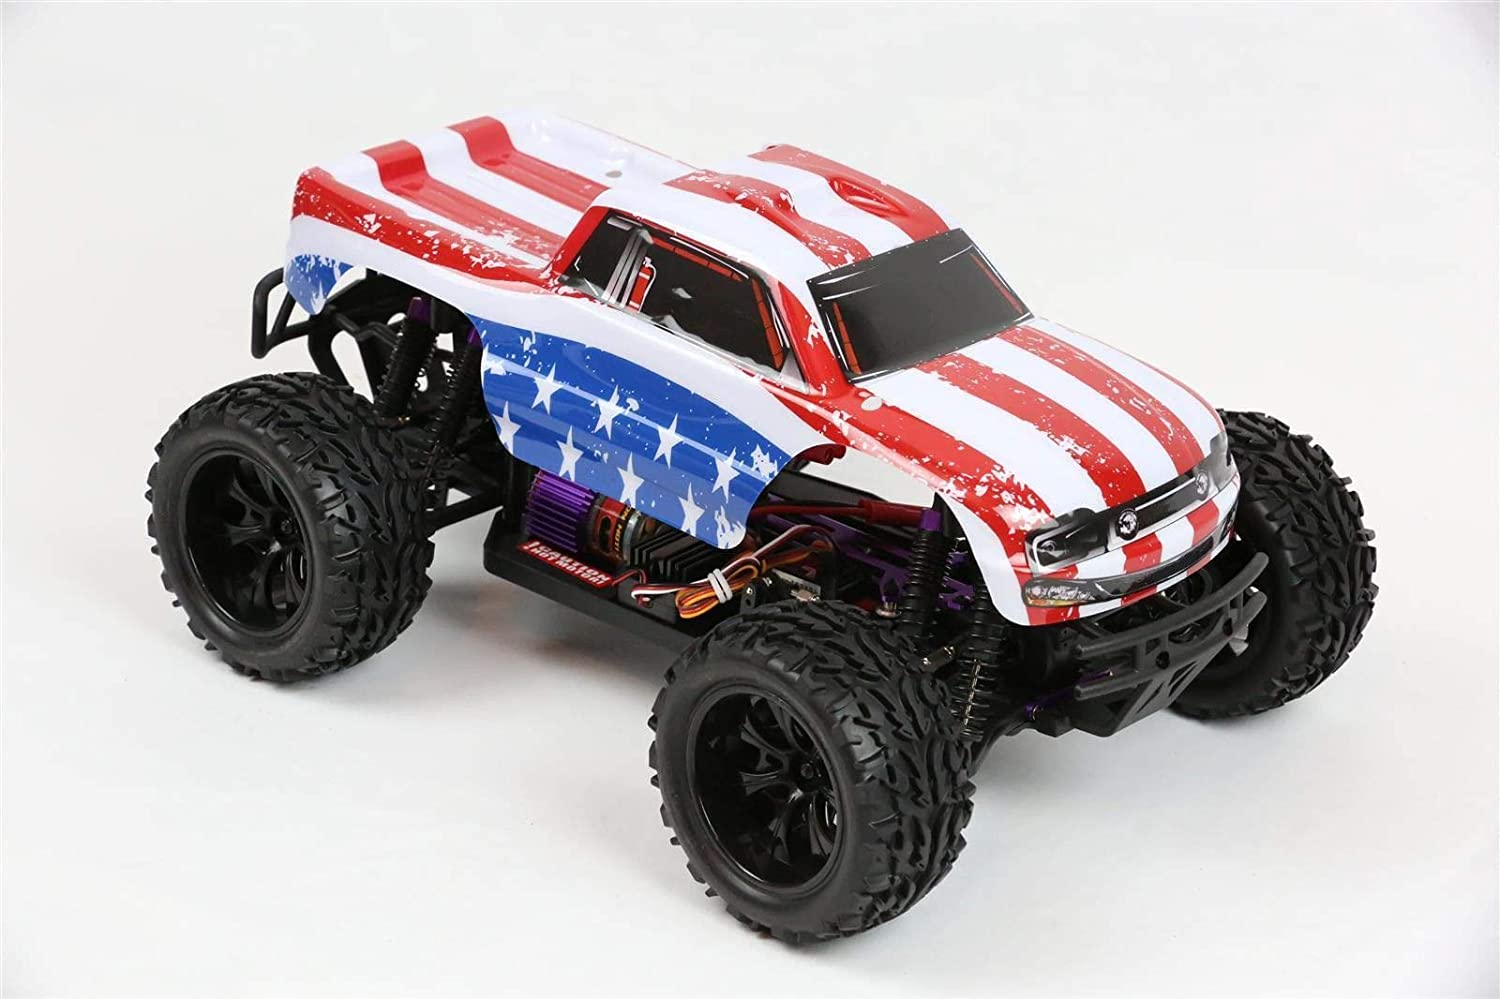 Amazon Com Summitlink Compatible Custom Body Flag Strip Style Replacement For 1 10 Scale Rc Car Or Truck Truck Not Included St St 01 Toys Games